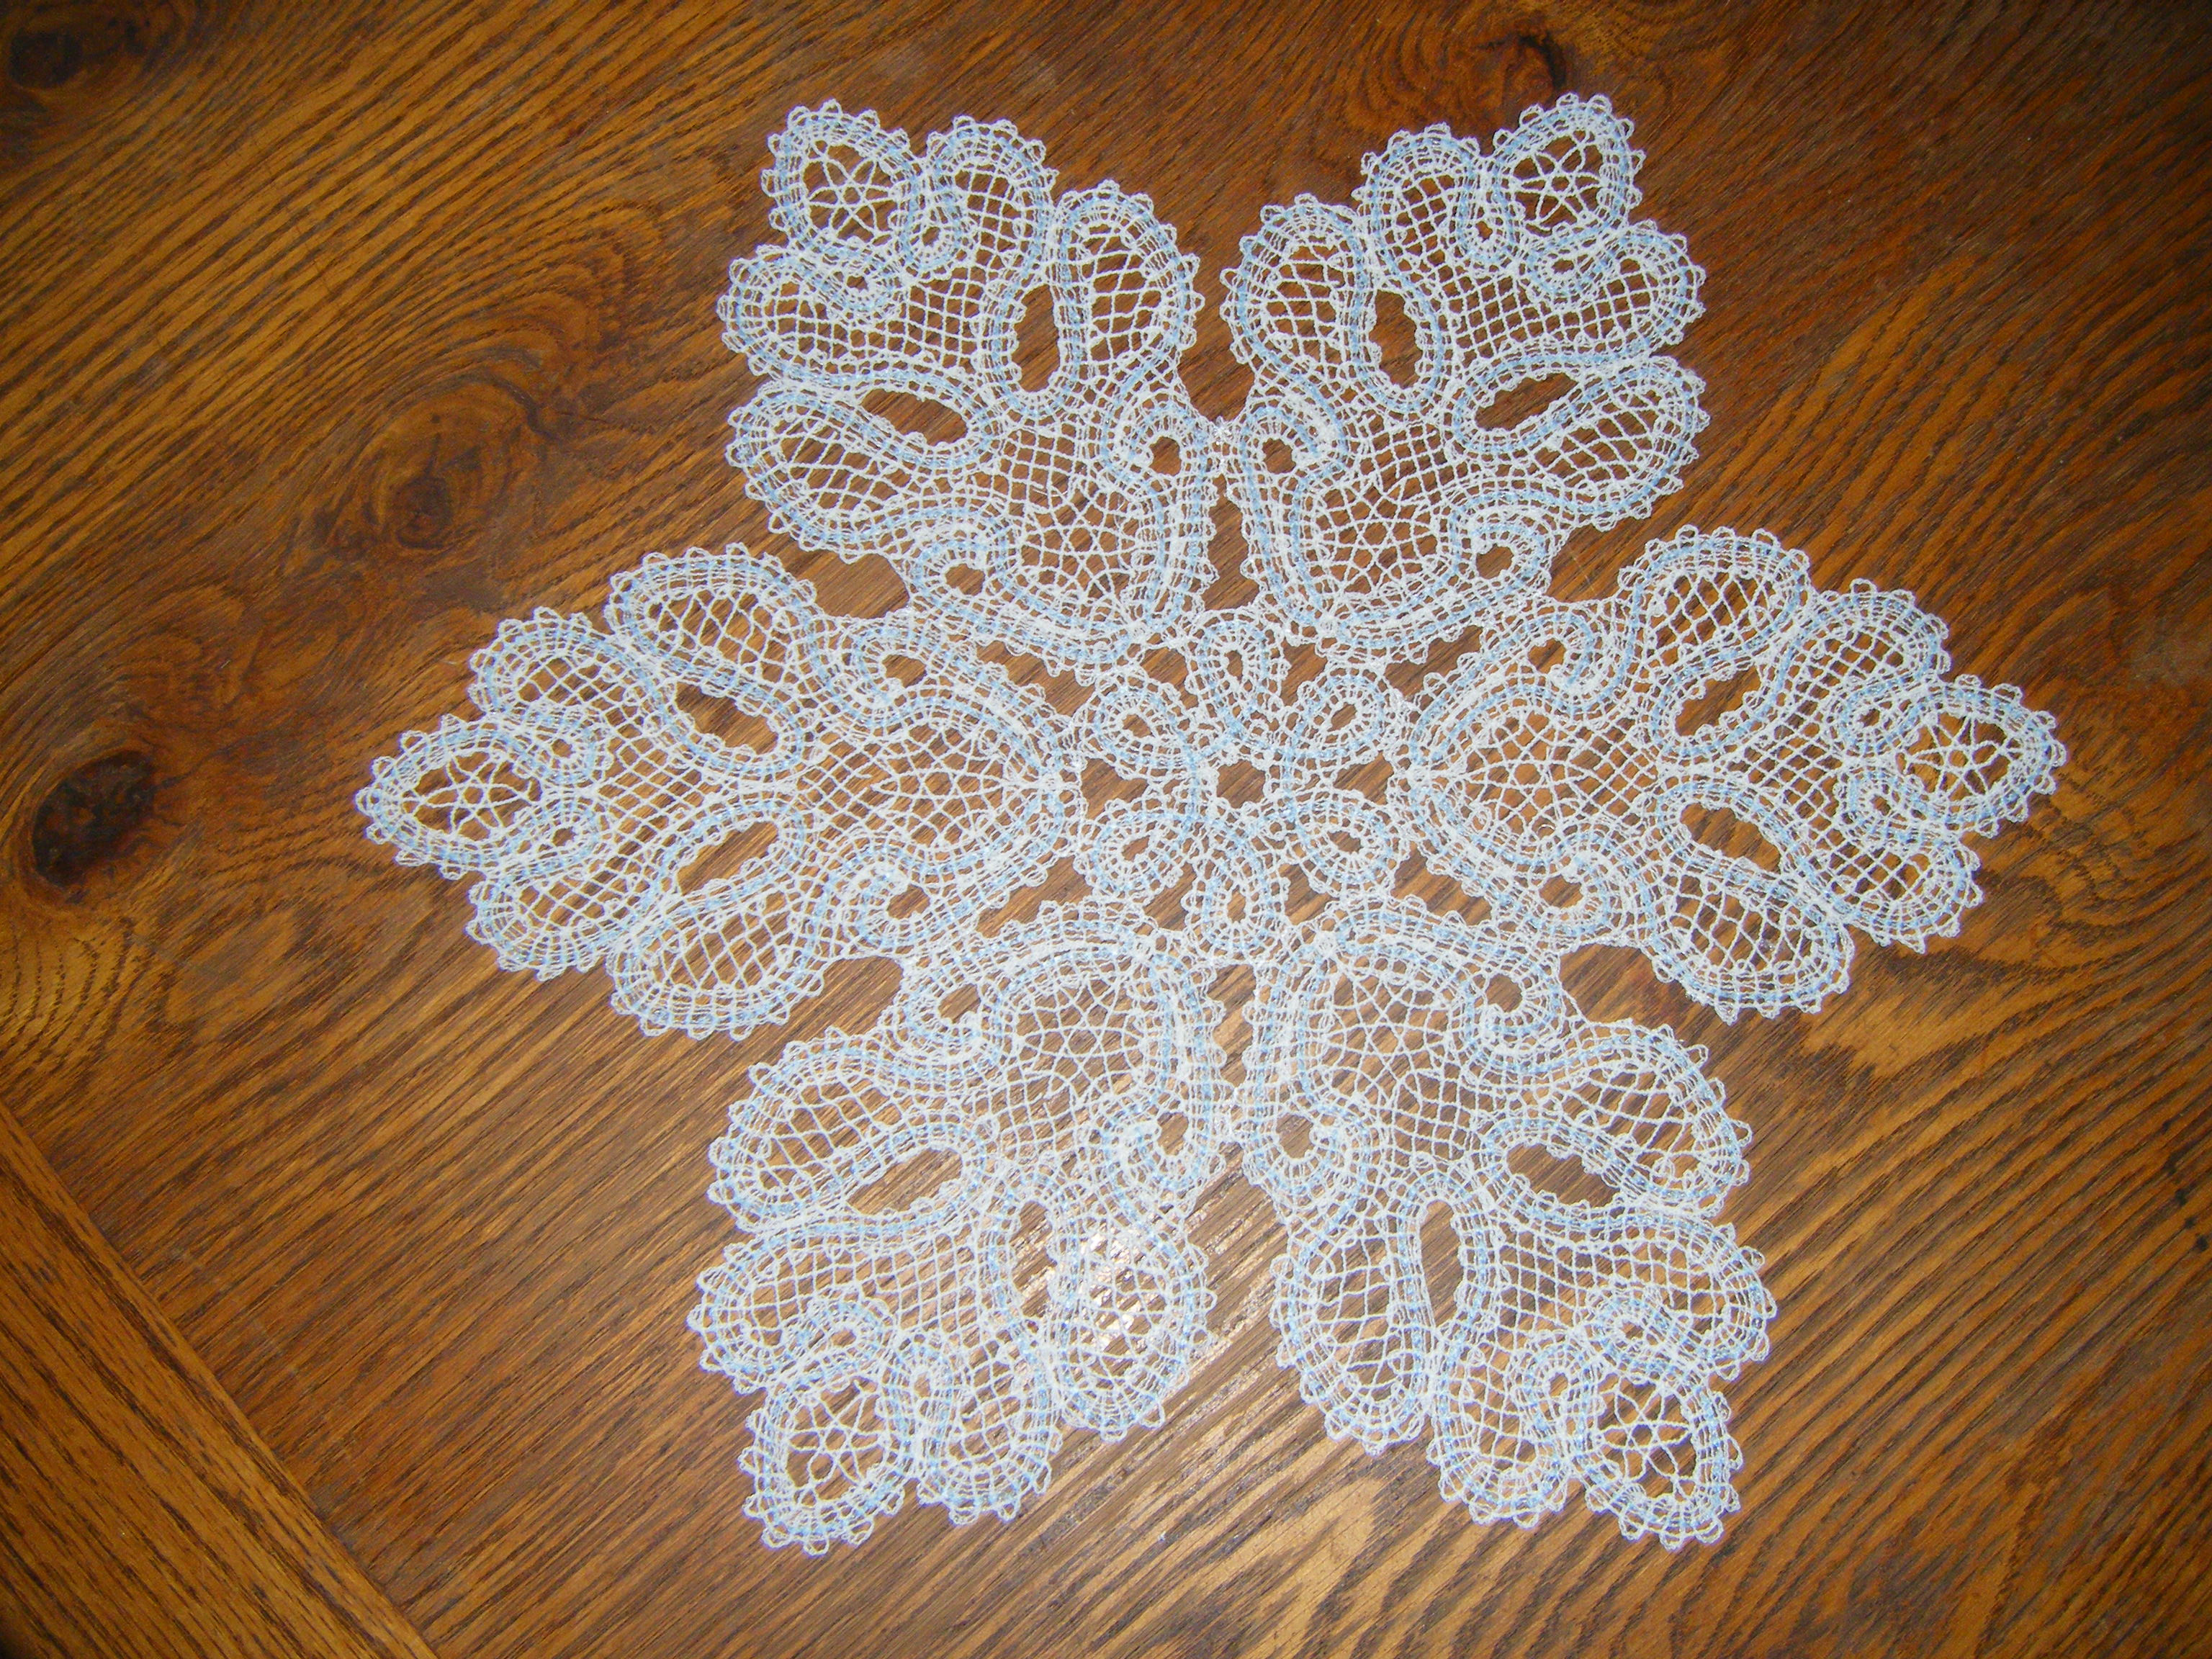 Crochet Doily Patterns Elegant How to Crochet Snowflake Patterns 33 Amazing Diy Of Contemporary 43 Pics Crochet Doily Patterns